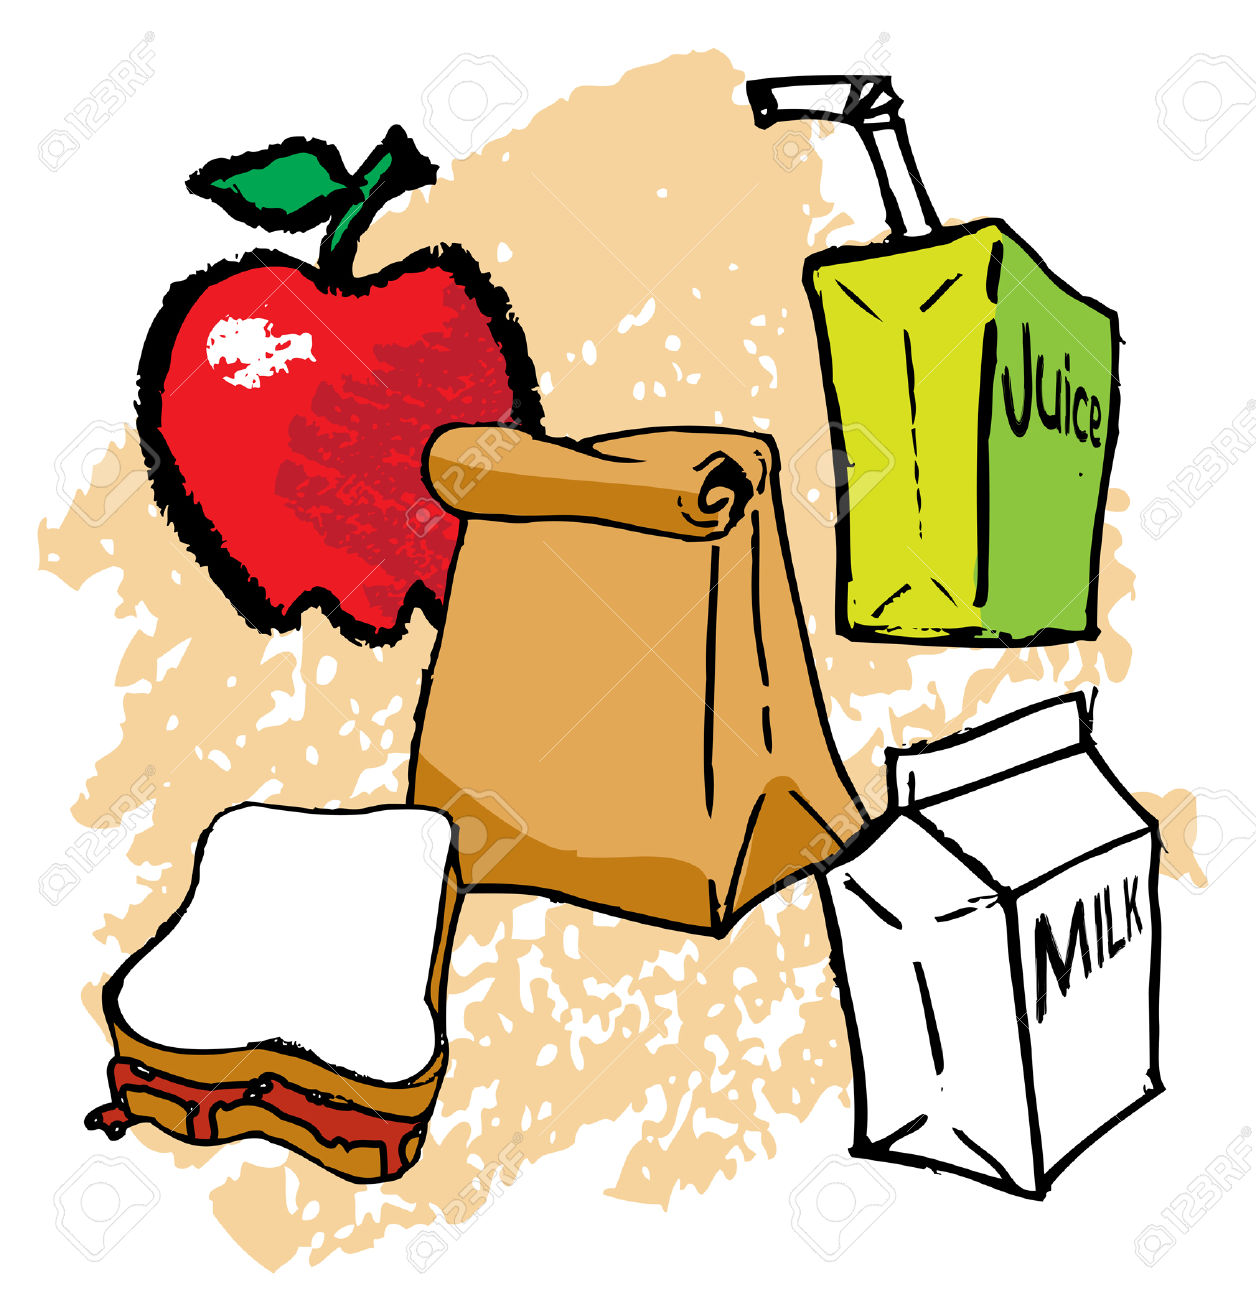 Kids School Bagged Lunch Royalty Free Cliparts, Vectors, And Stock.